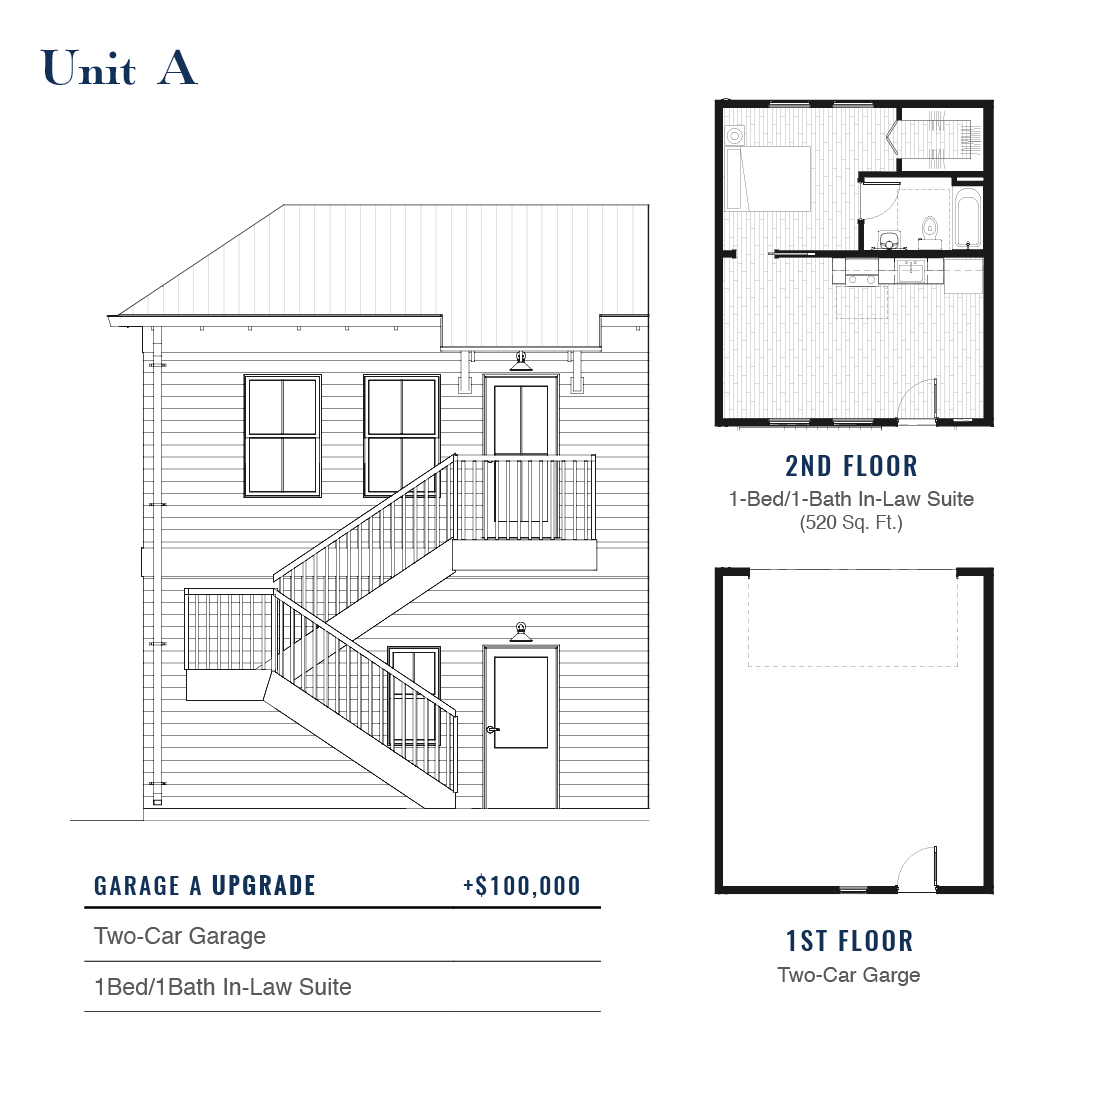 Unit A Premium Garage with ADU | East Wilbur LiveWorks, Downtown Lake Mary